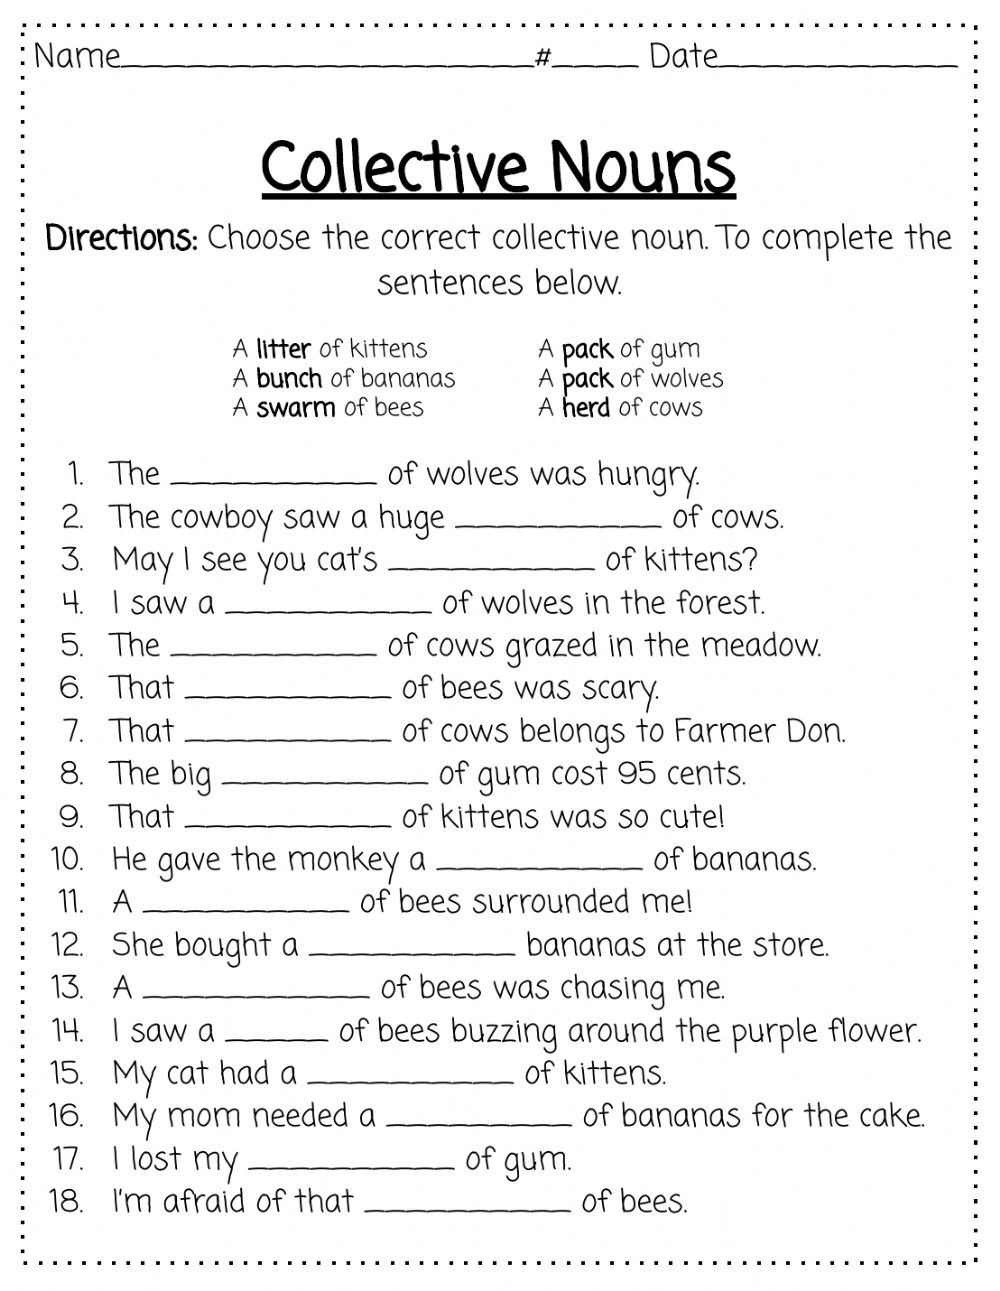 medium resolution of Collective Nouns activity for 2